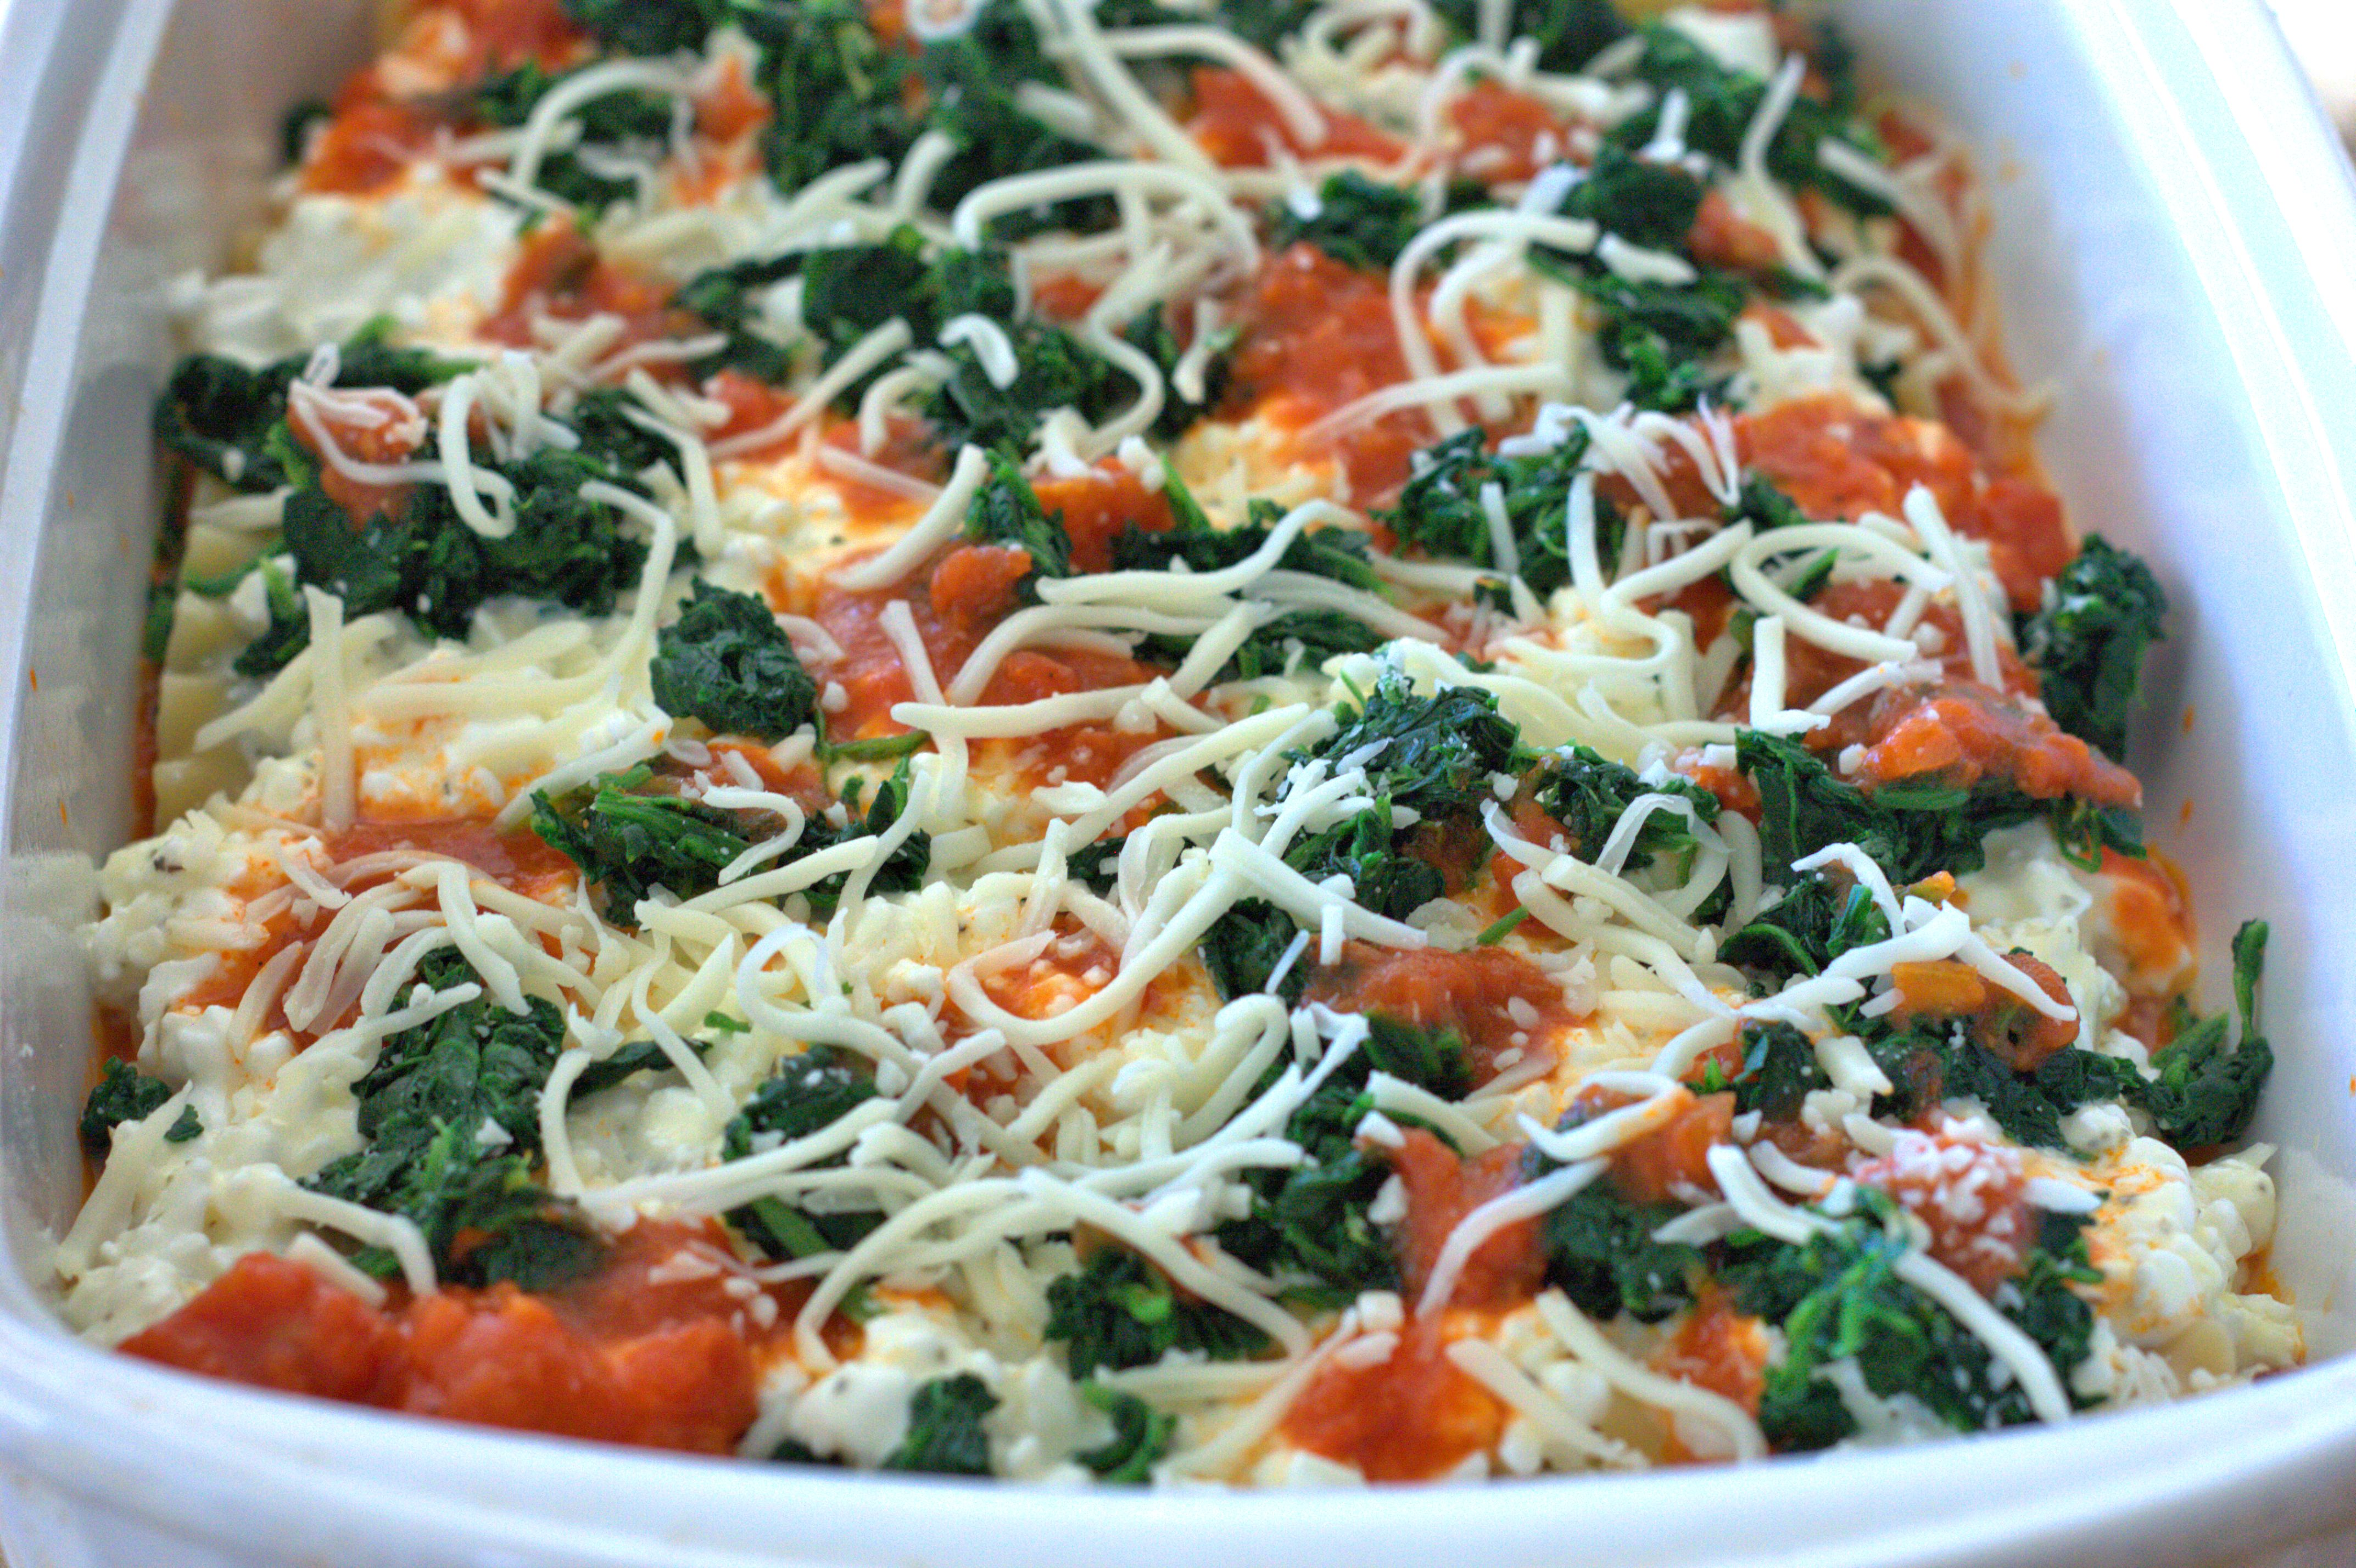 Elegant The First Tweak I Made To The Recipe Was The Cheese Filler. Growing Up, My  Mom Always Made A Lighter Version Of Lasagna Using Cottage Cheese Instead  Of ...